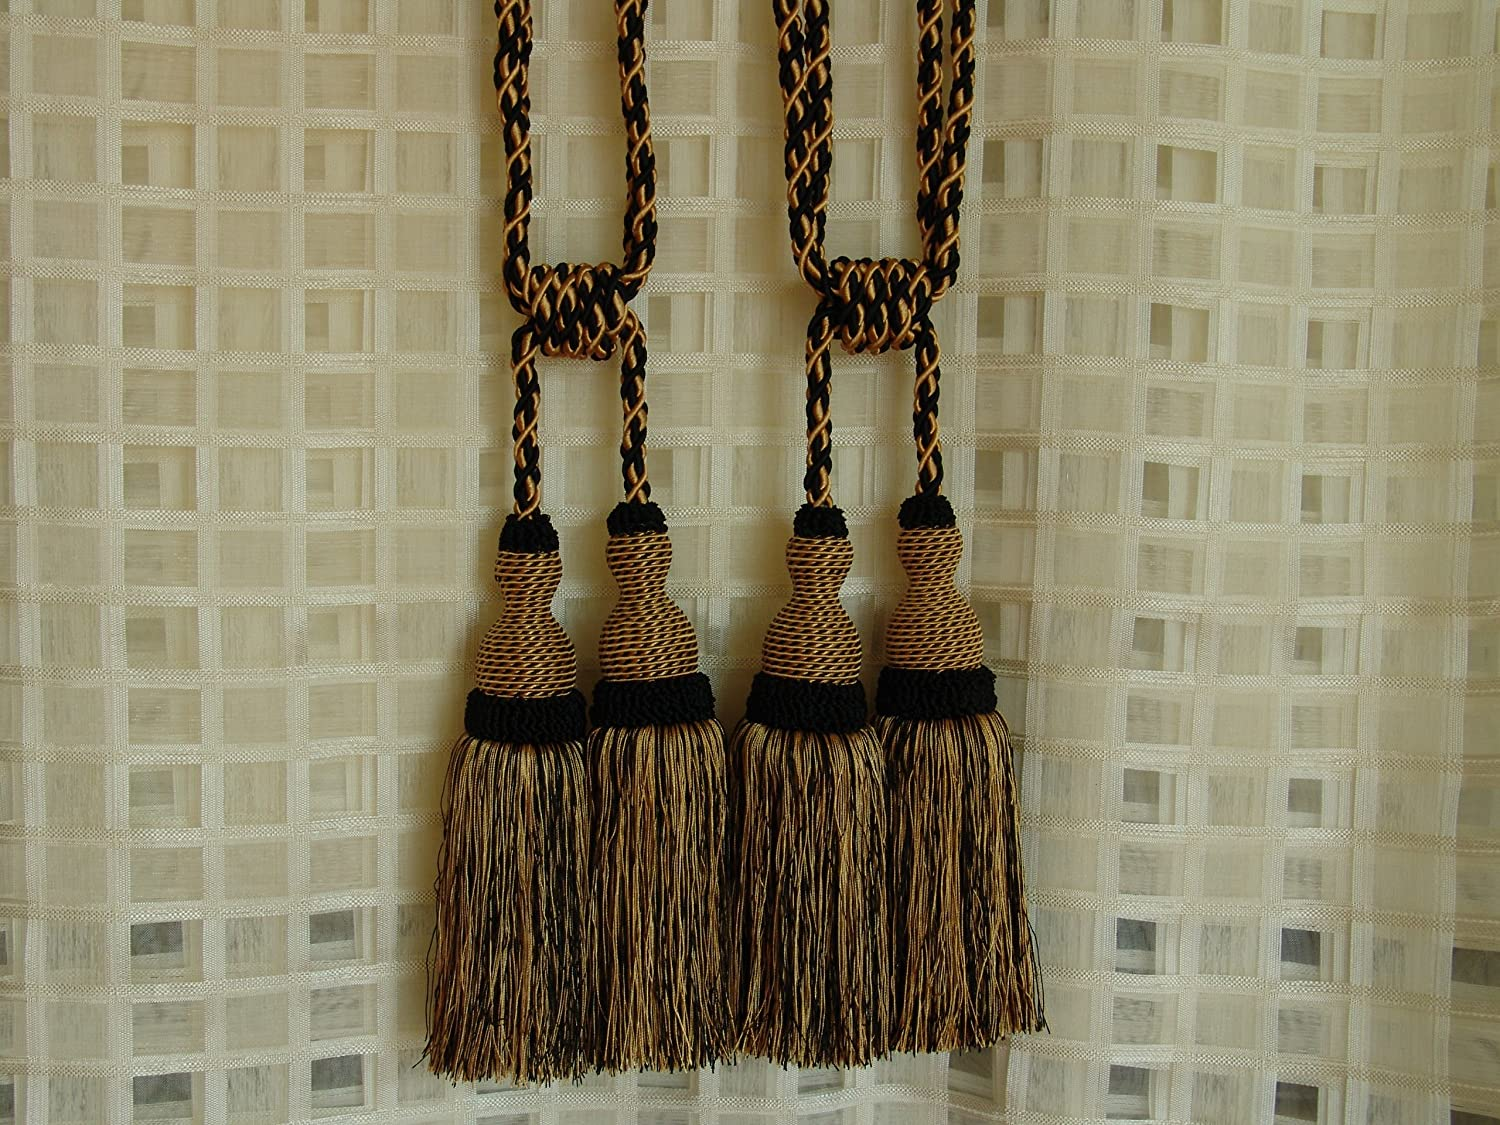 Set of 2 Vintage Drapery Tiebacks or Chair Tie Black and Gold with Black Tassel Ends Home Decor Upcycle Crafts